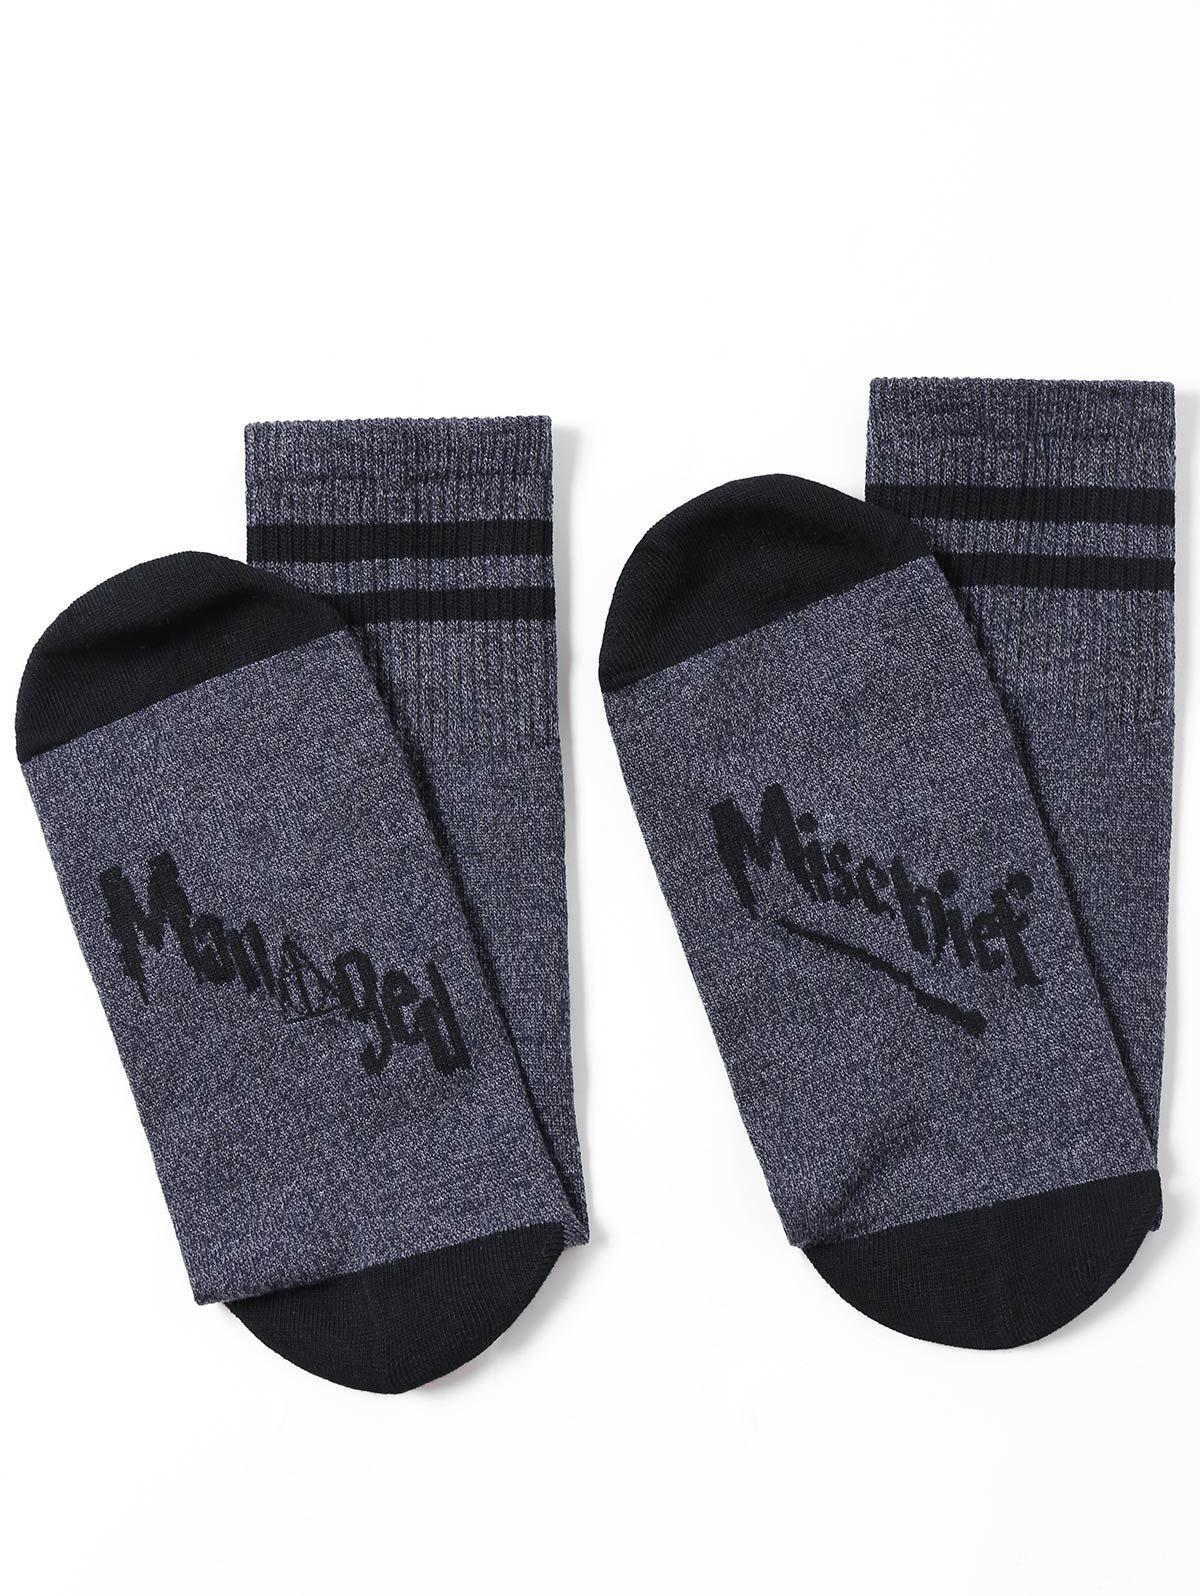 Tube Socks with Mischief Printing - GRAY